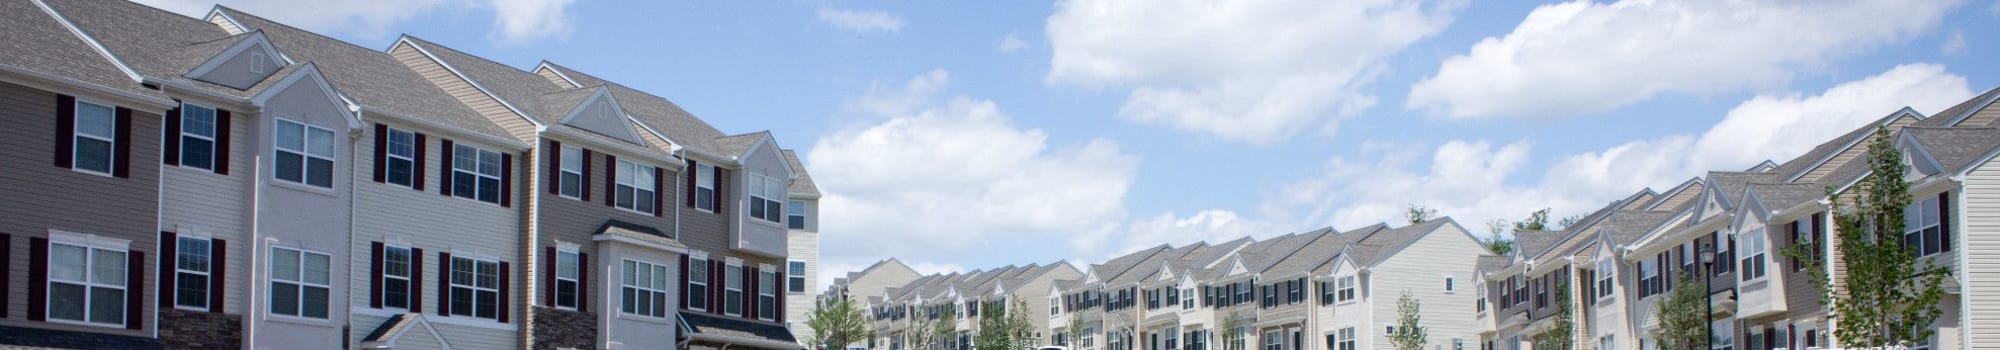 Schedule your Emerald Pointe Townhomes today